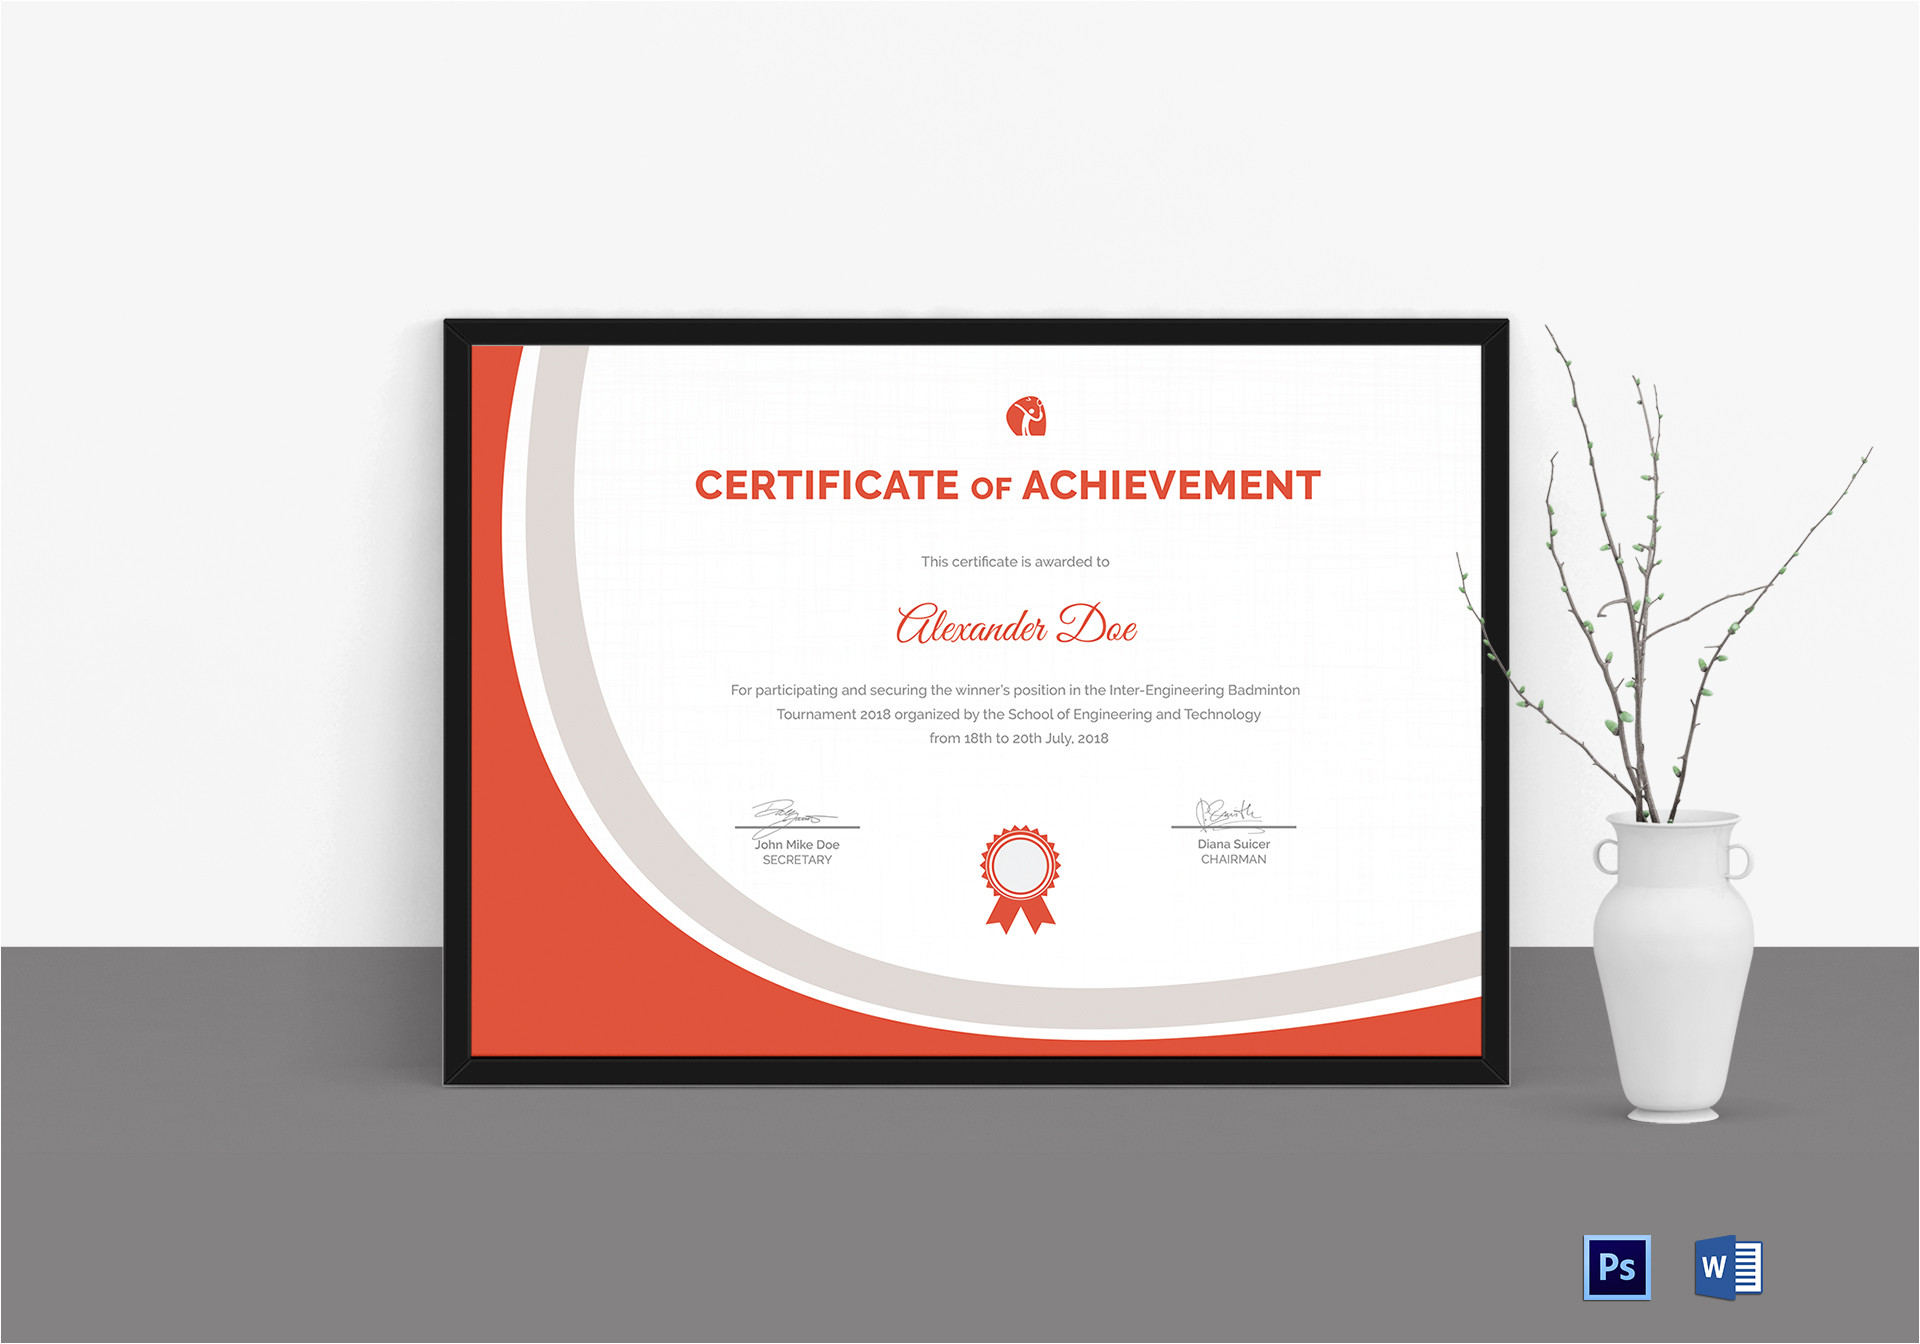 Badminton Certificate Template Badminton Certificate Design Template In Word Psd